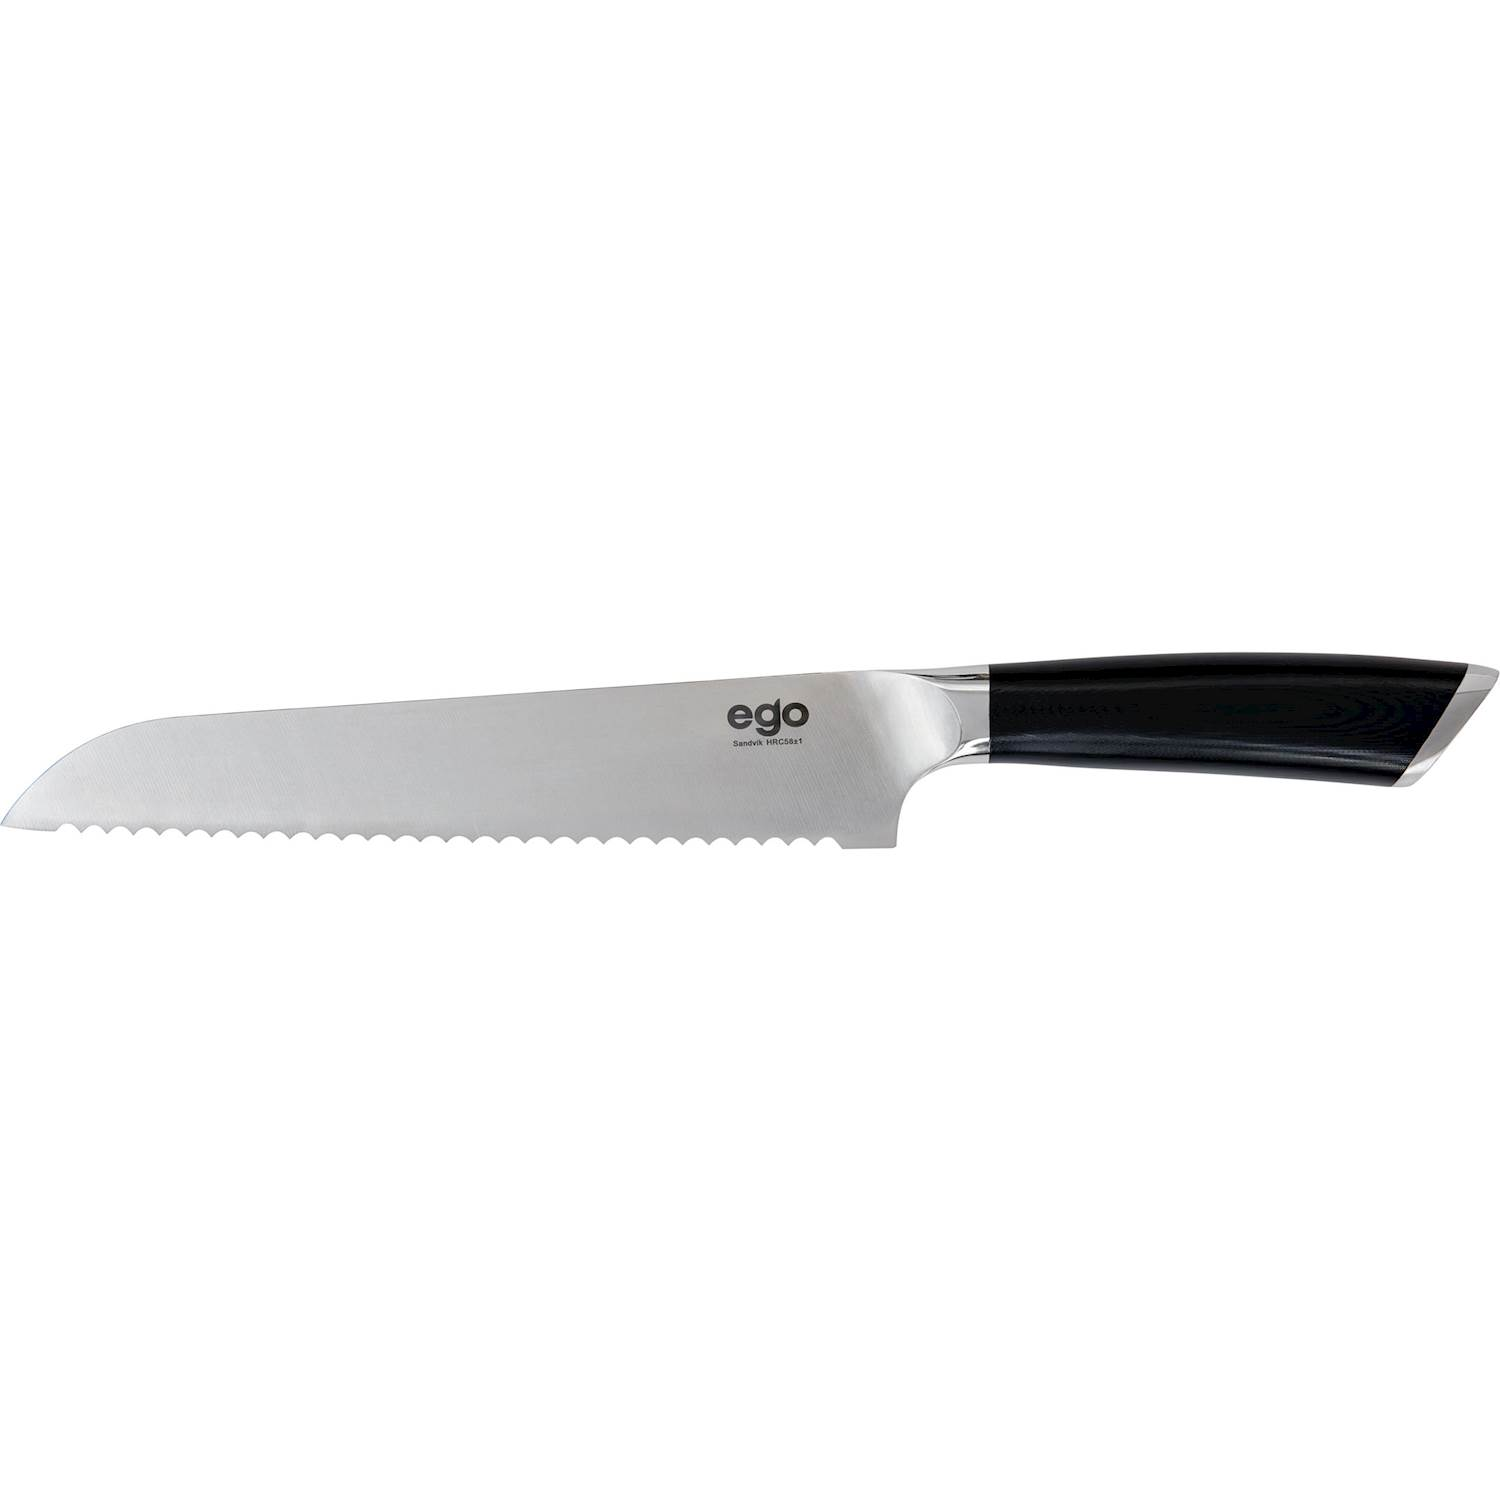 EGO EGO Knife 20 cm bread knife